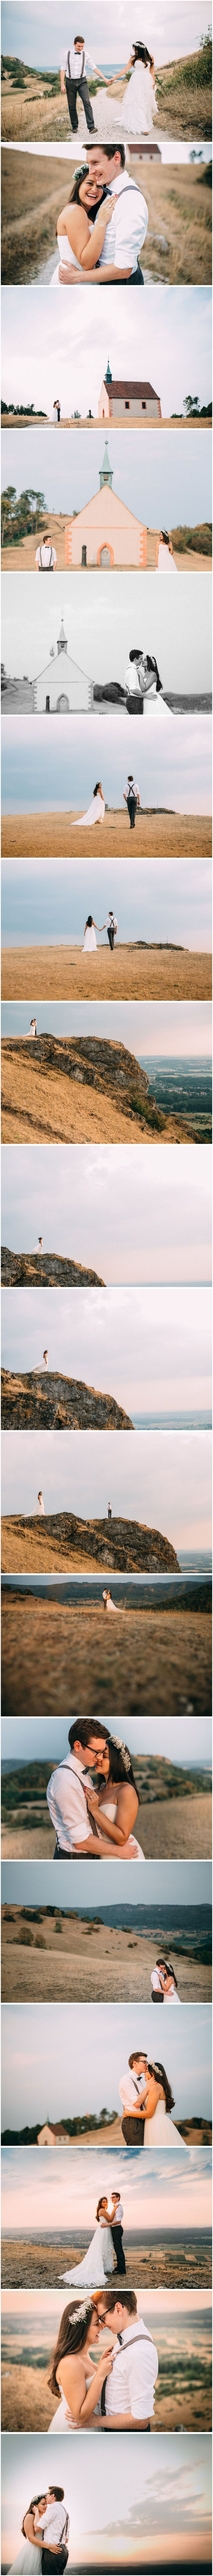 Engagement Session in Walberla Germany - e-session brazilian wedding photographer Arthur Rosa - fotografia de casamento em Fortaleza-CE